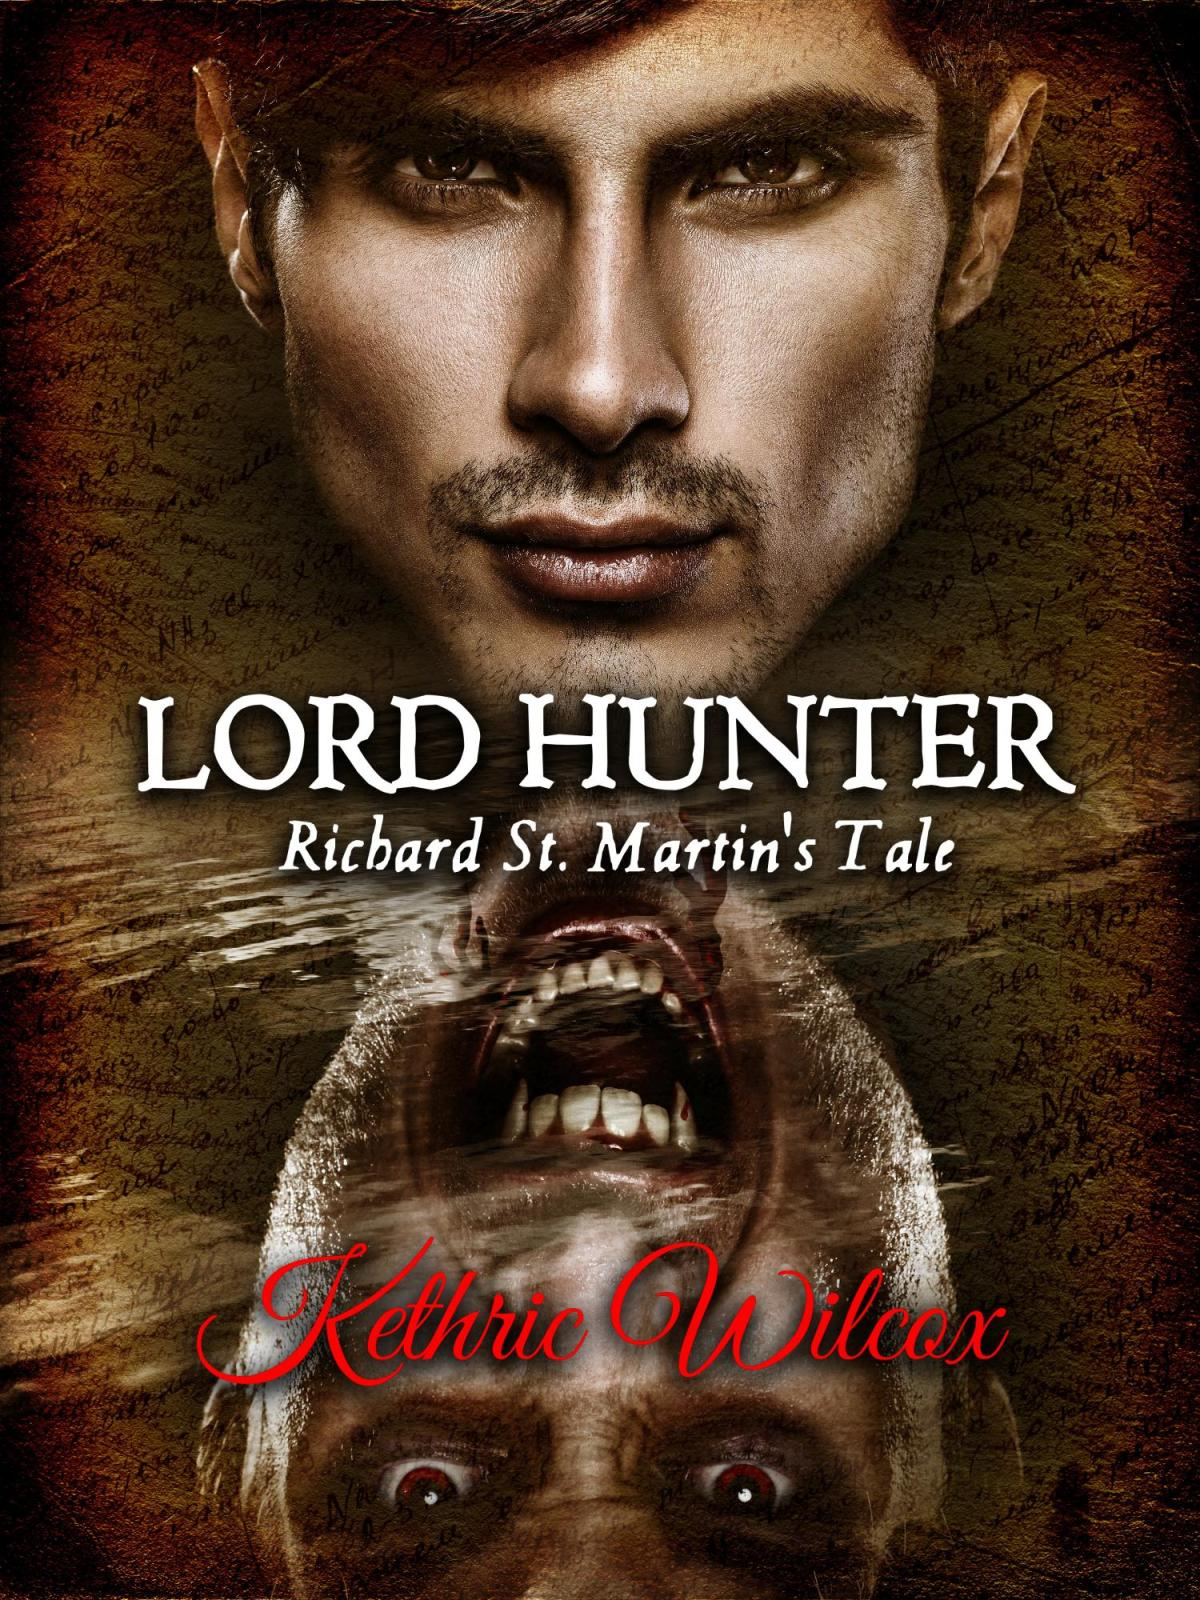 Vampires in the world of the Silver Hunter